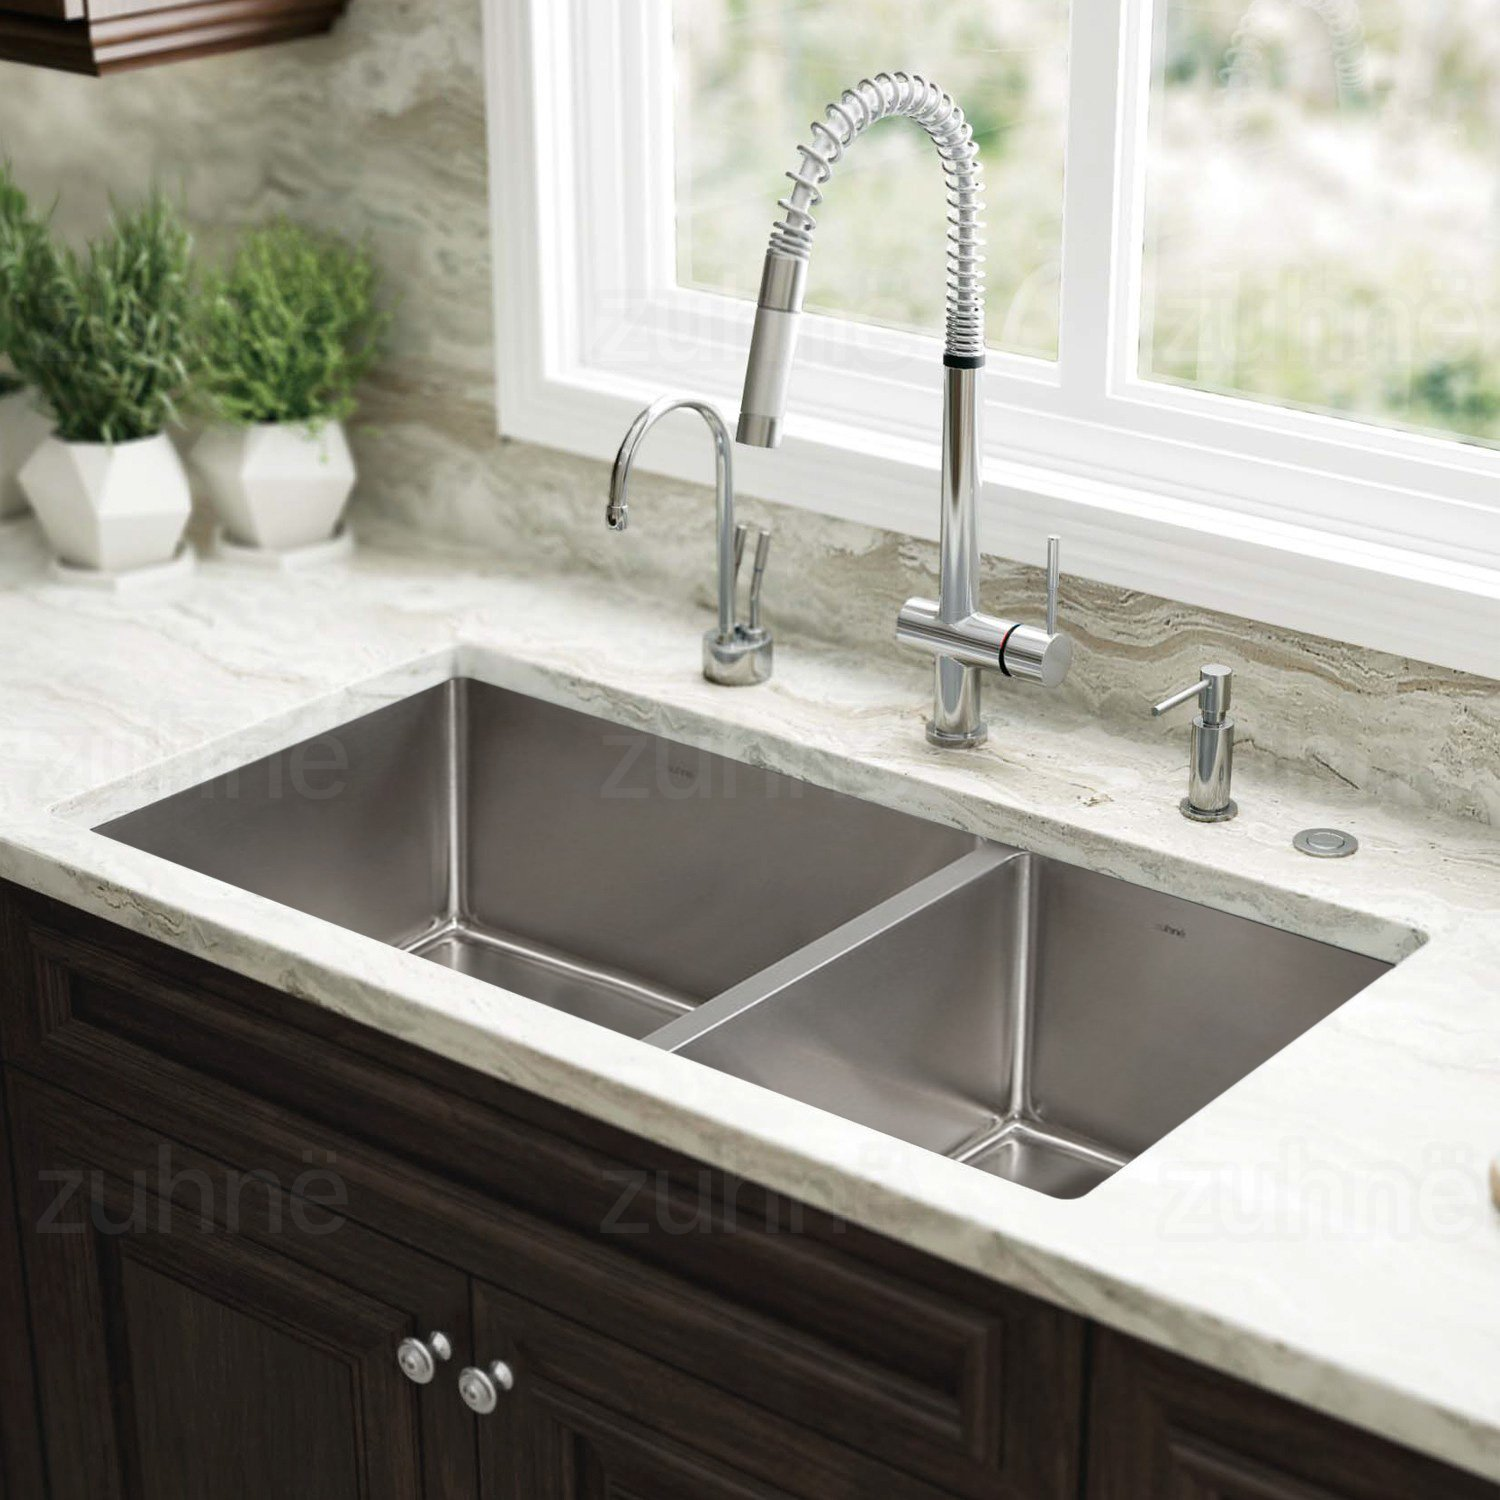 voilamart single kitchen sink hsv gauge sinks undermount stainless x bowl topmount flushmount f handmade tap steel